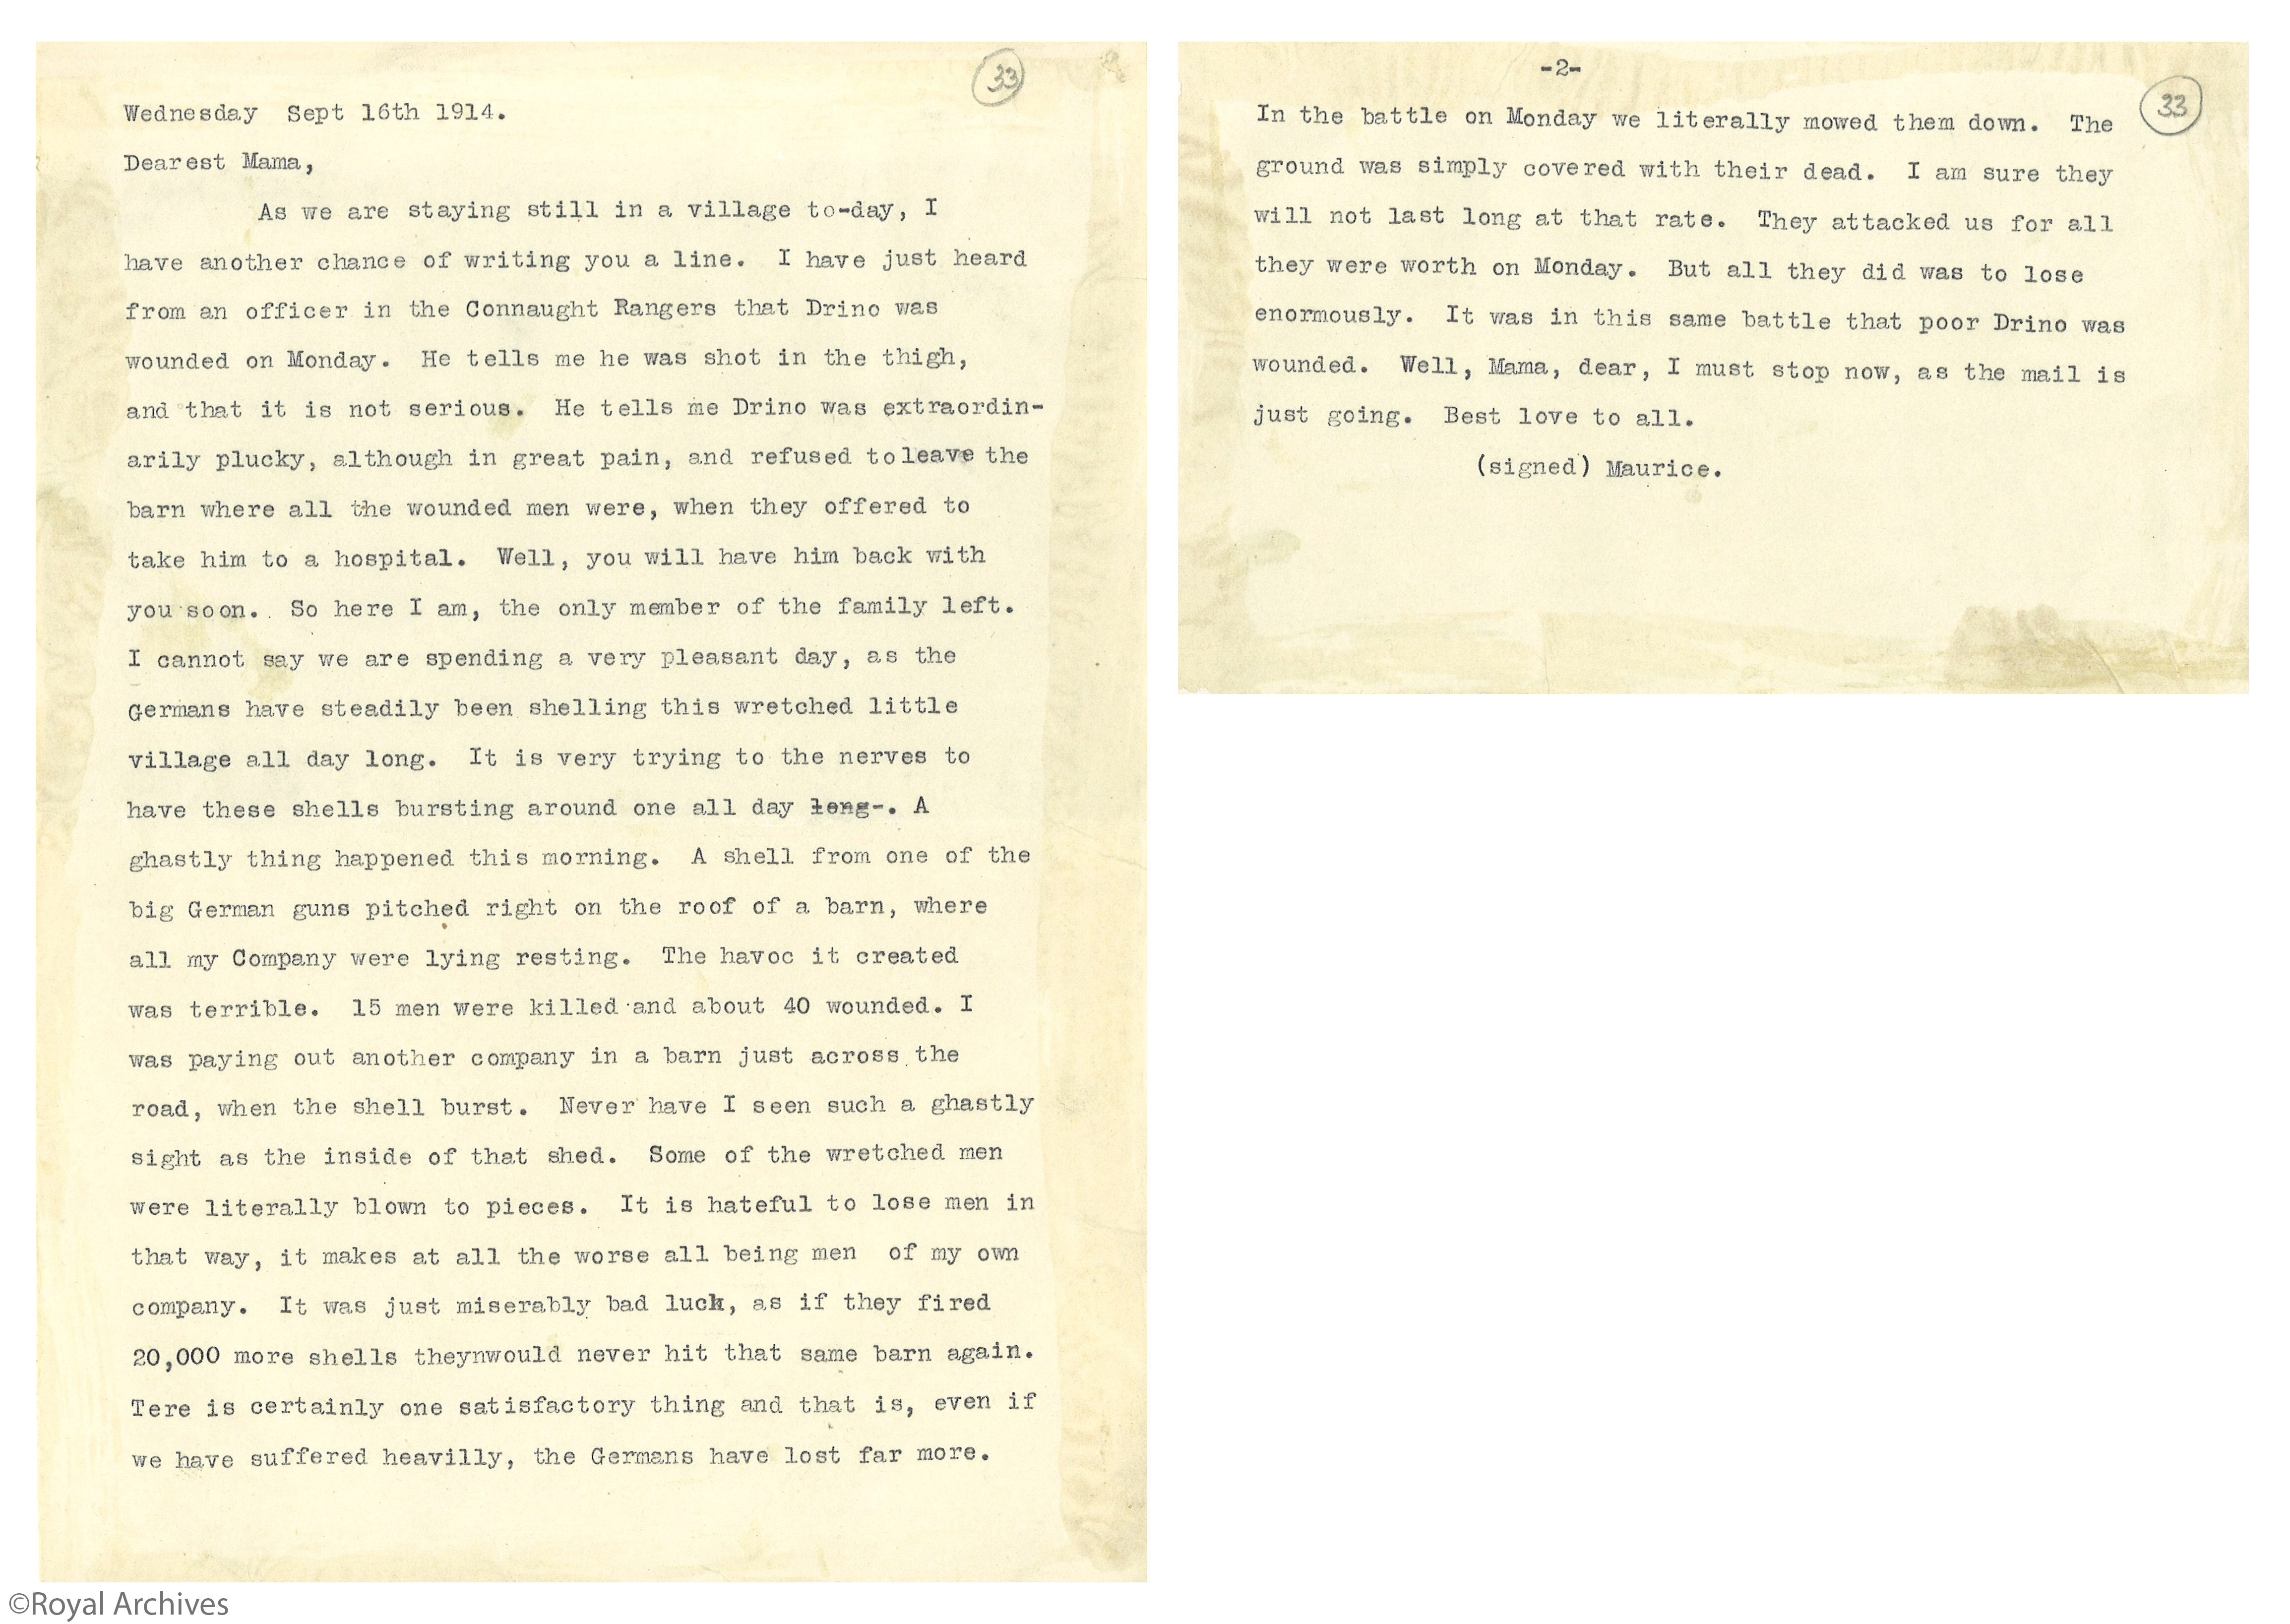 Prince Maurice letter